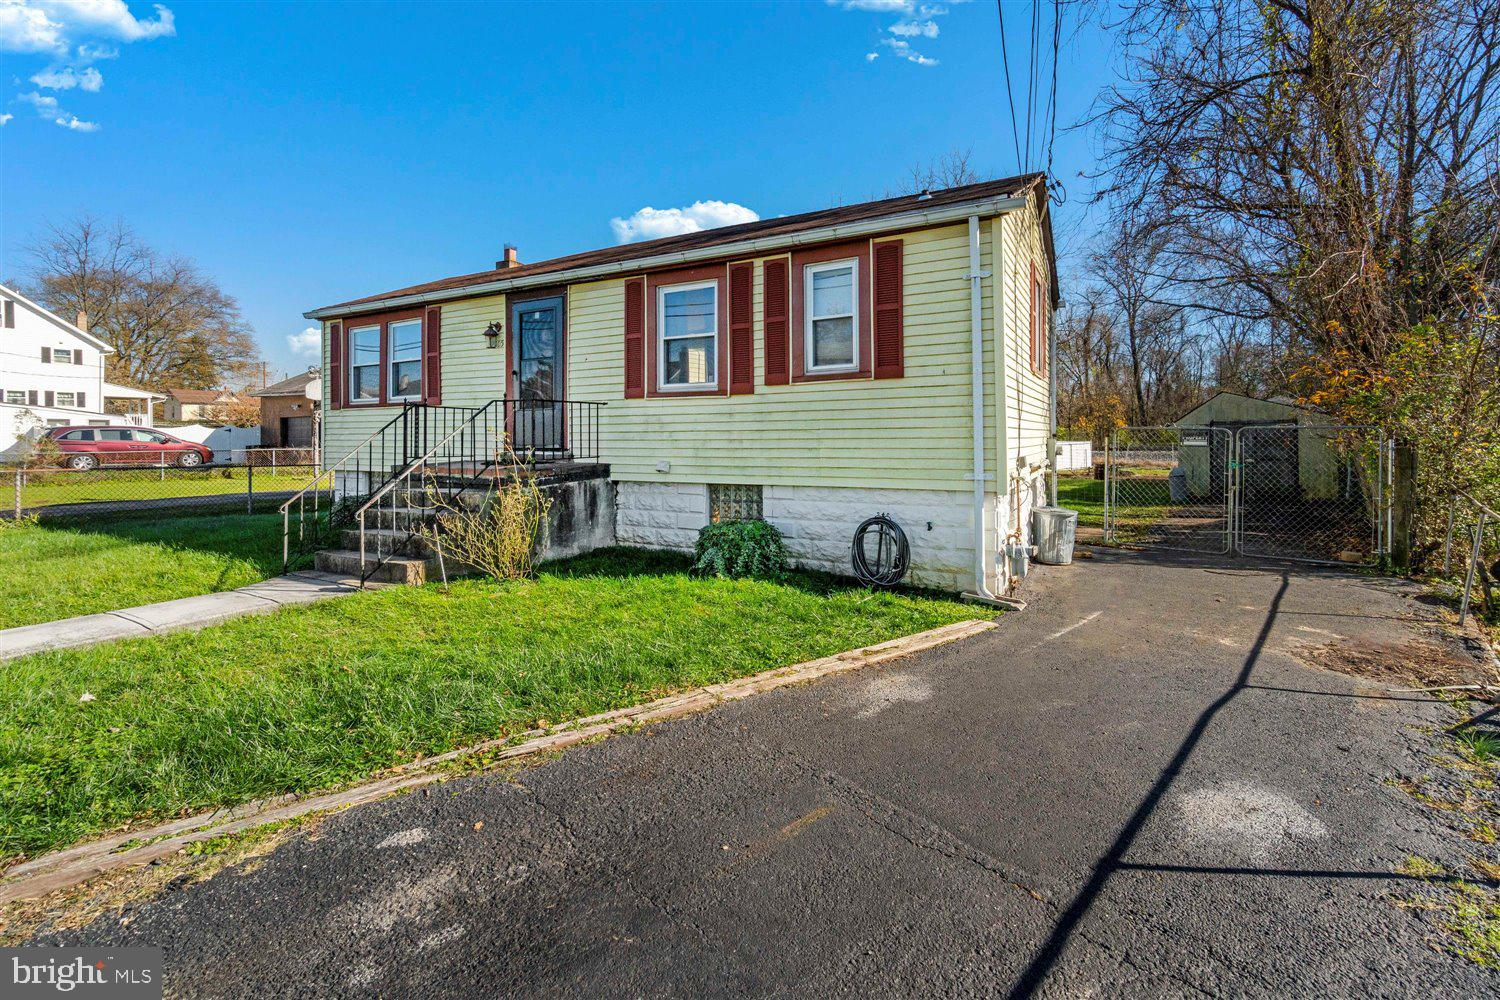 Don't miss the opportunity to steal this cozy 2 Bedroom, 1 Full Bath house tucked quietly in the Mar